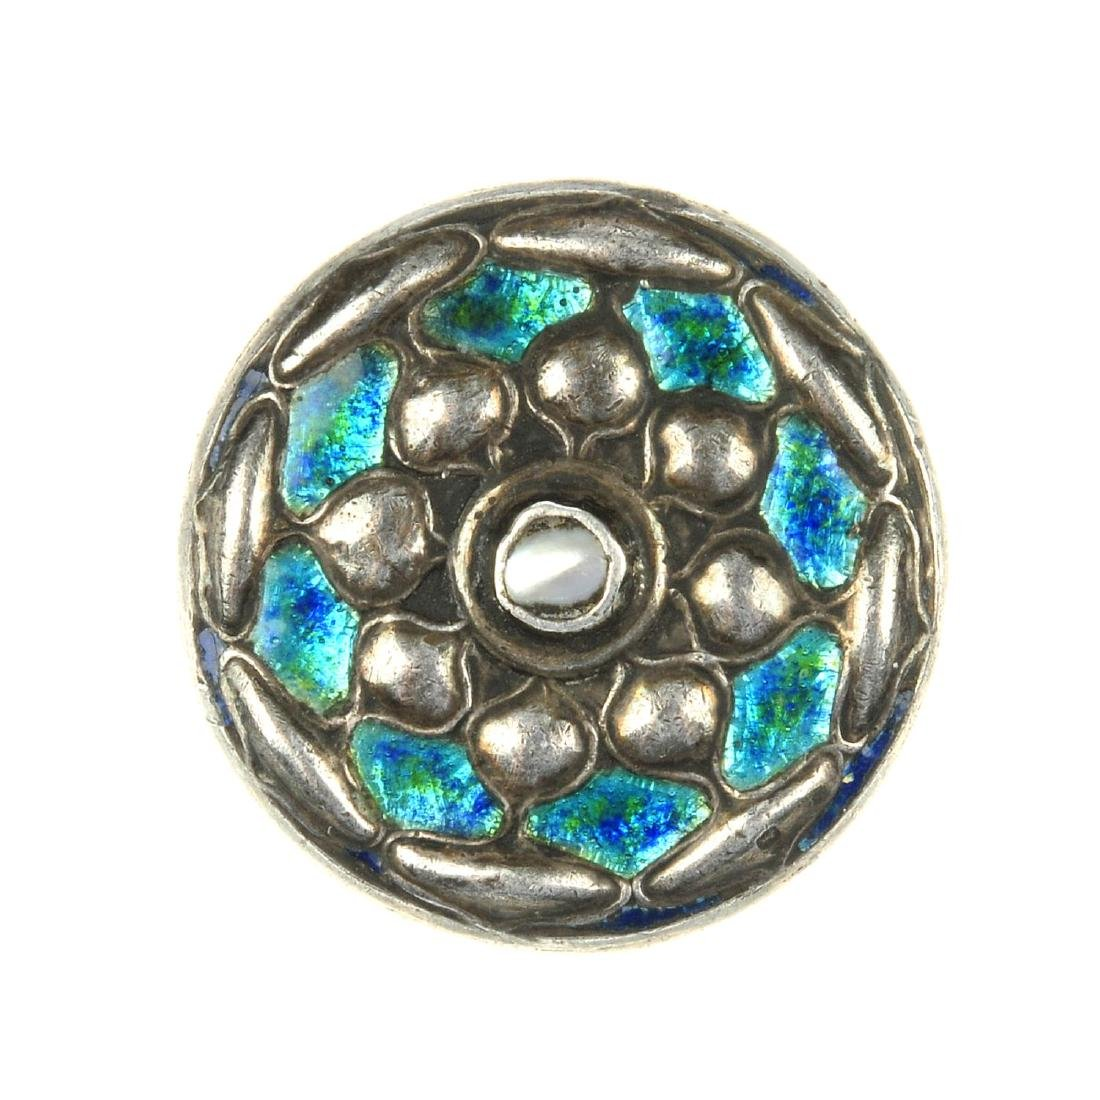 W. H. HASELER - a silver enamel and mother of pearl